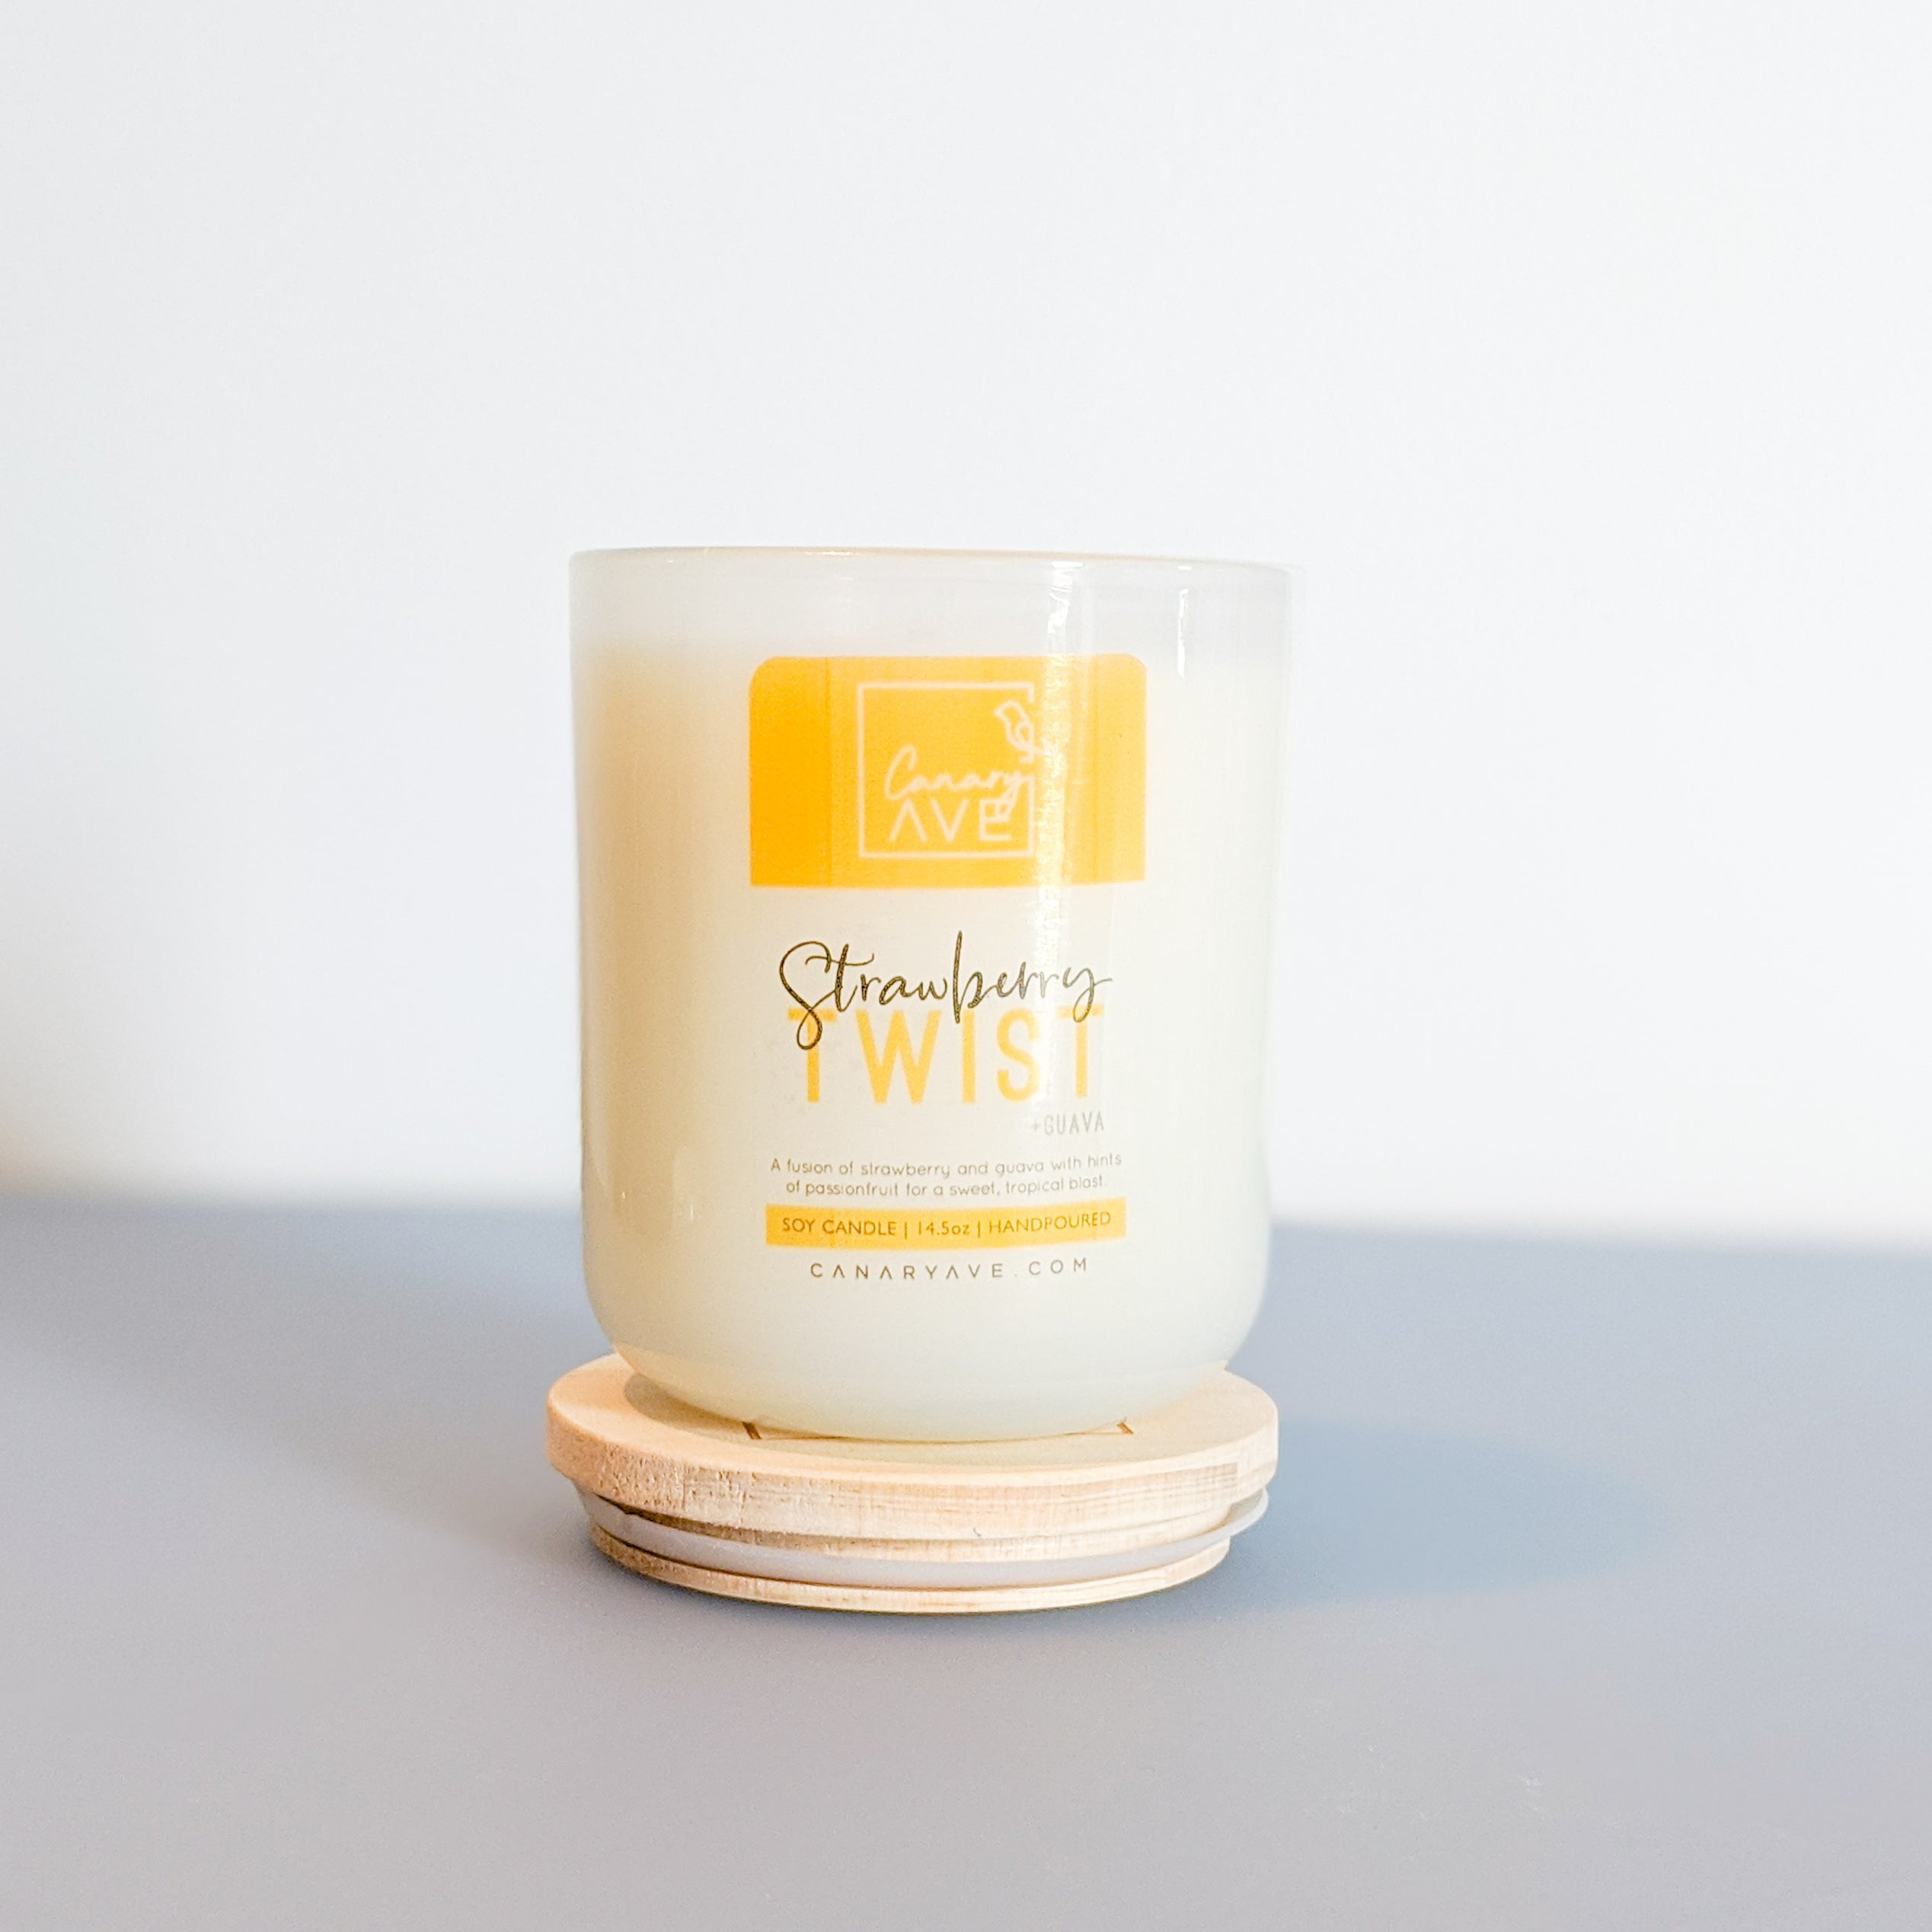 Strawberry Twist Candle